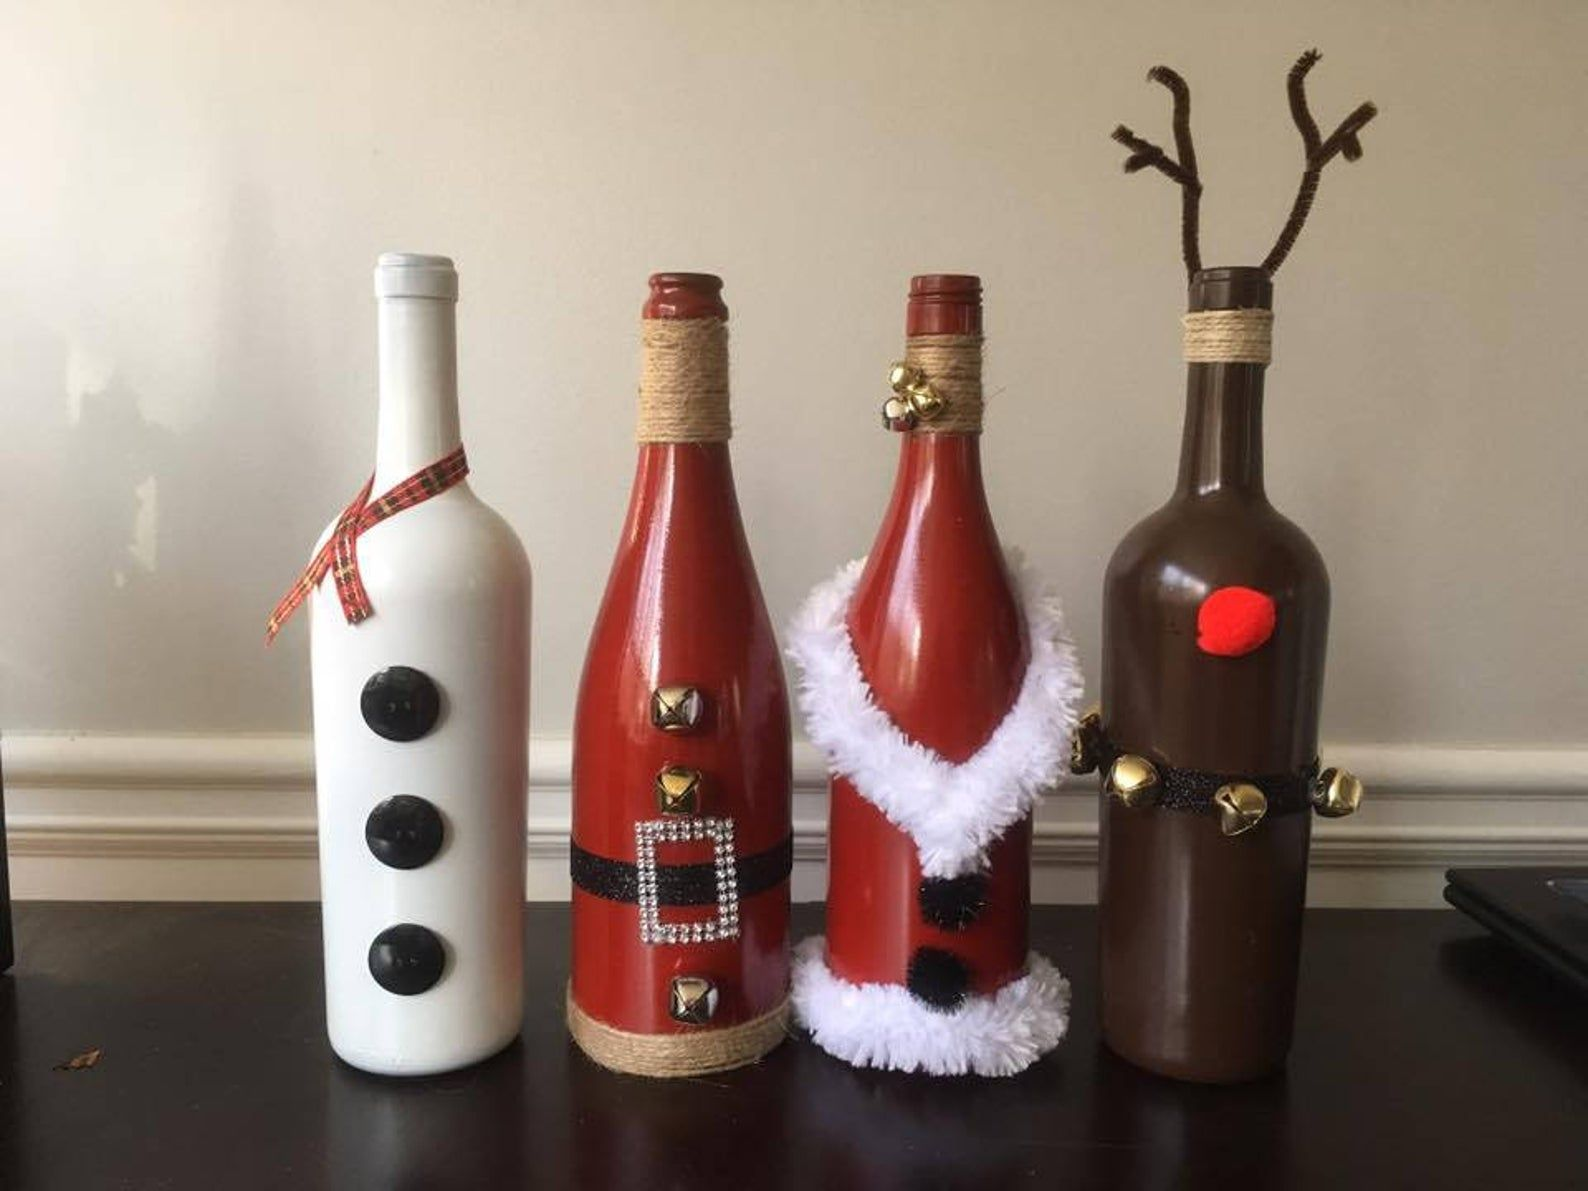 Christmas Decorated Wine Bottles In 2020 Wine Bottle Christmas Decorations Wine Bottle Crafts Christmas Diy Bottle Crafts